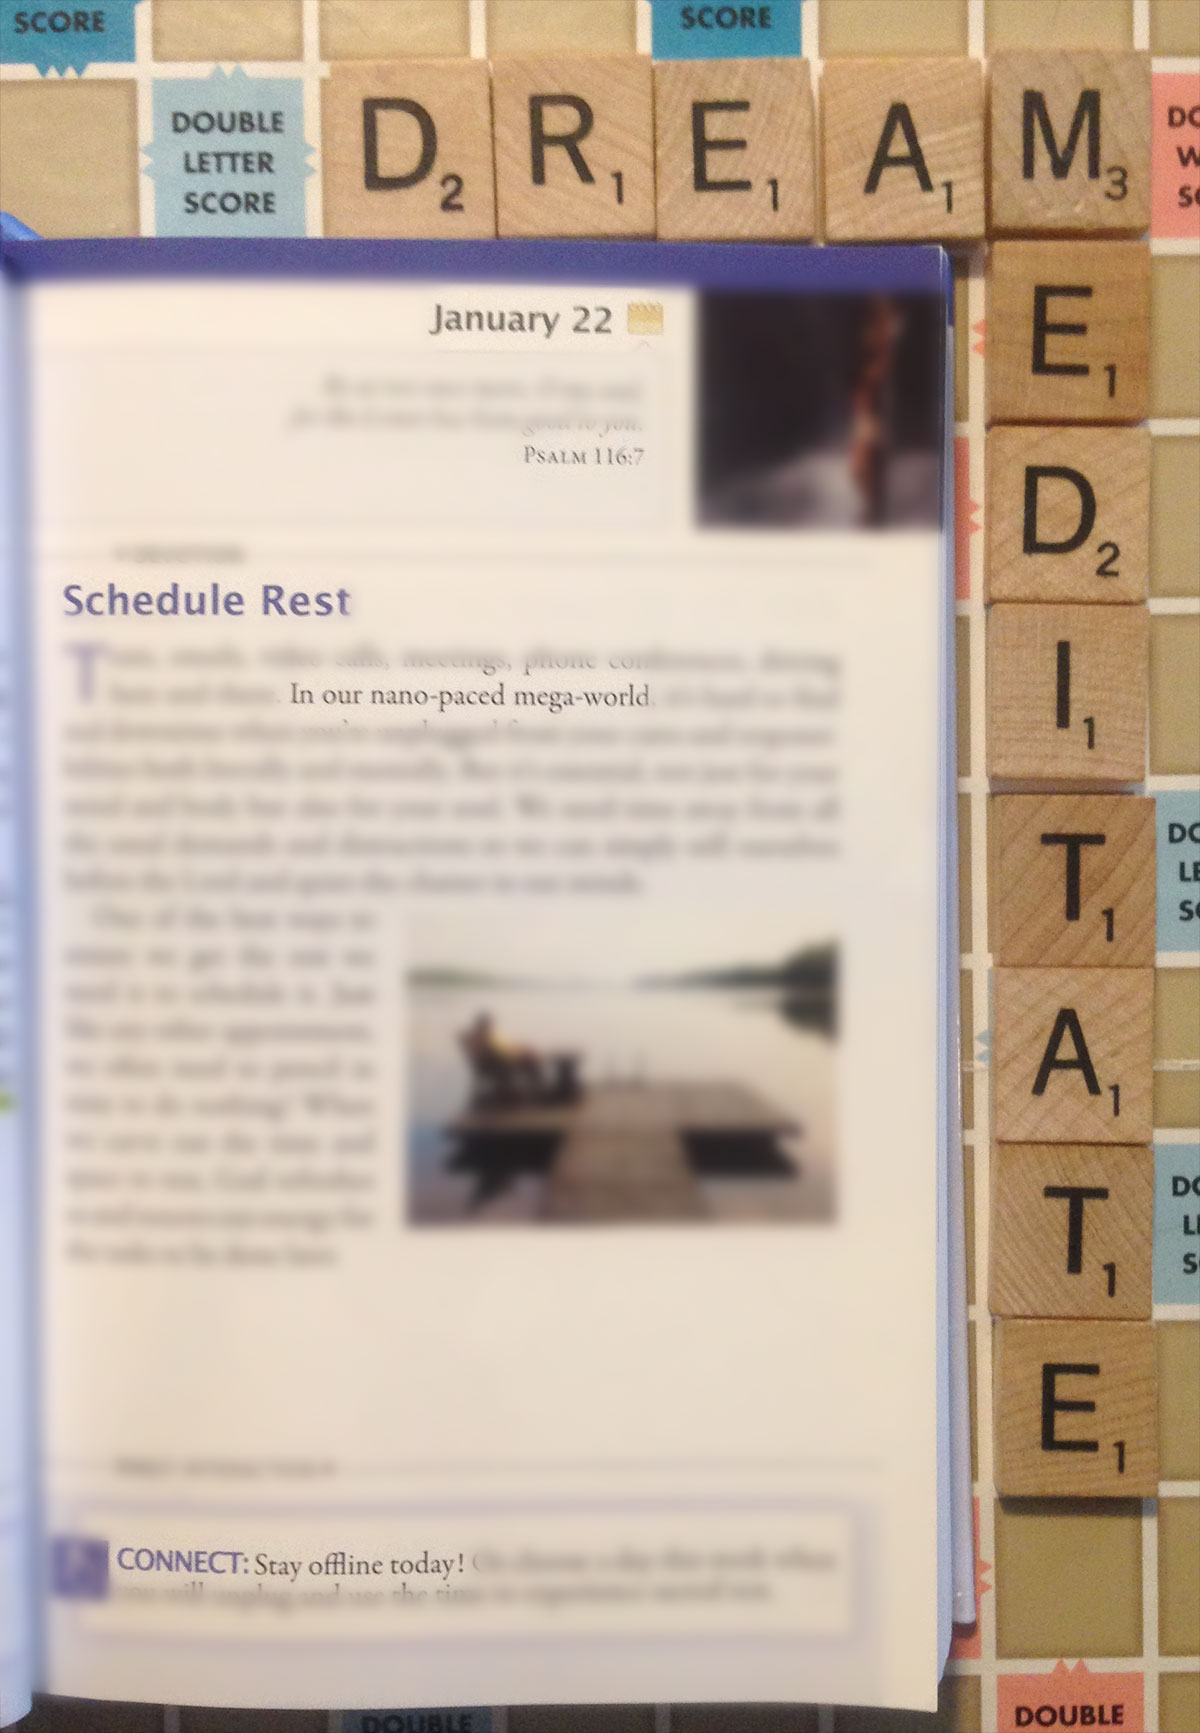 """""""Schedule Rest"""" - Naptime With God (Living Without Jesus, Daily - January 22)"""